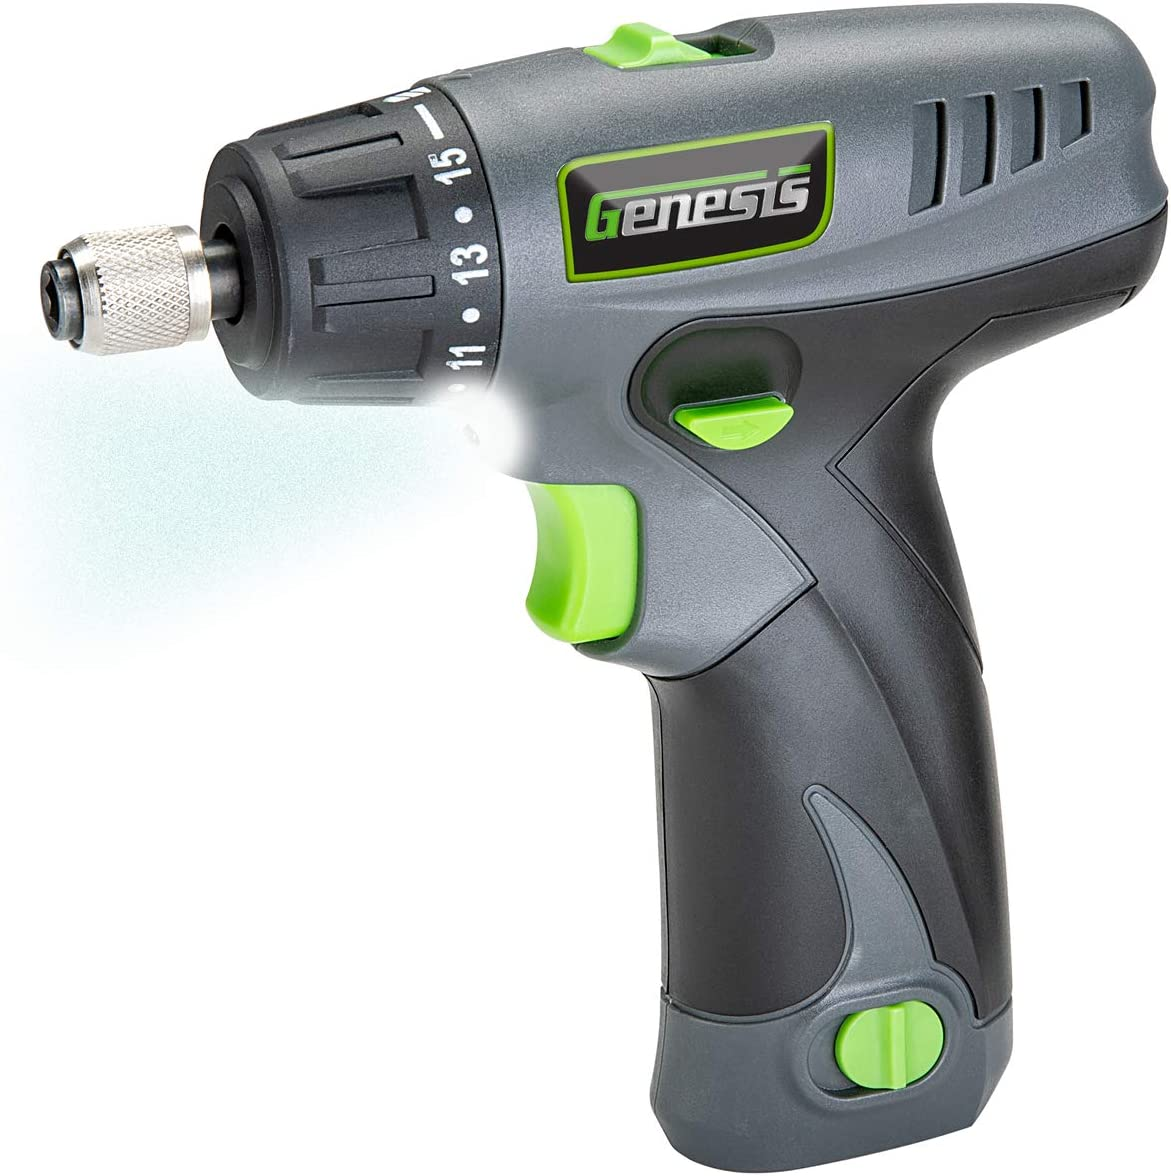 Genesis GLSD08B 8V Lithium-Ion Battery-Powered Quick-Change 2-Speed Cordless Screwdriver with LED Work Light, Battery Pack, Charging Stand, 4 Hex-Shank Drill Bits, and 4 Screwdriver Bits